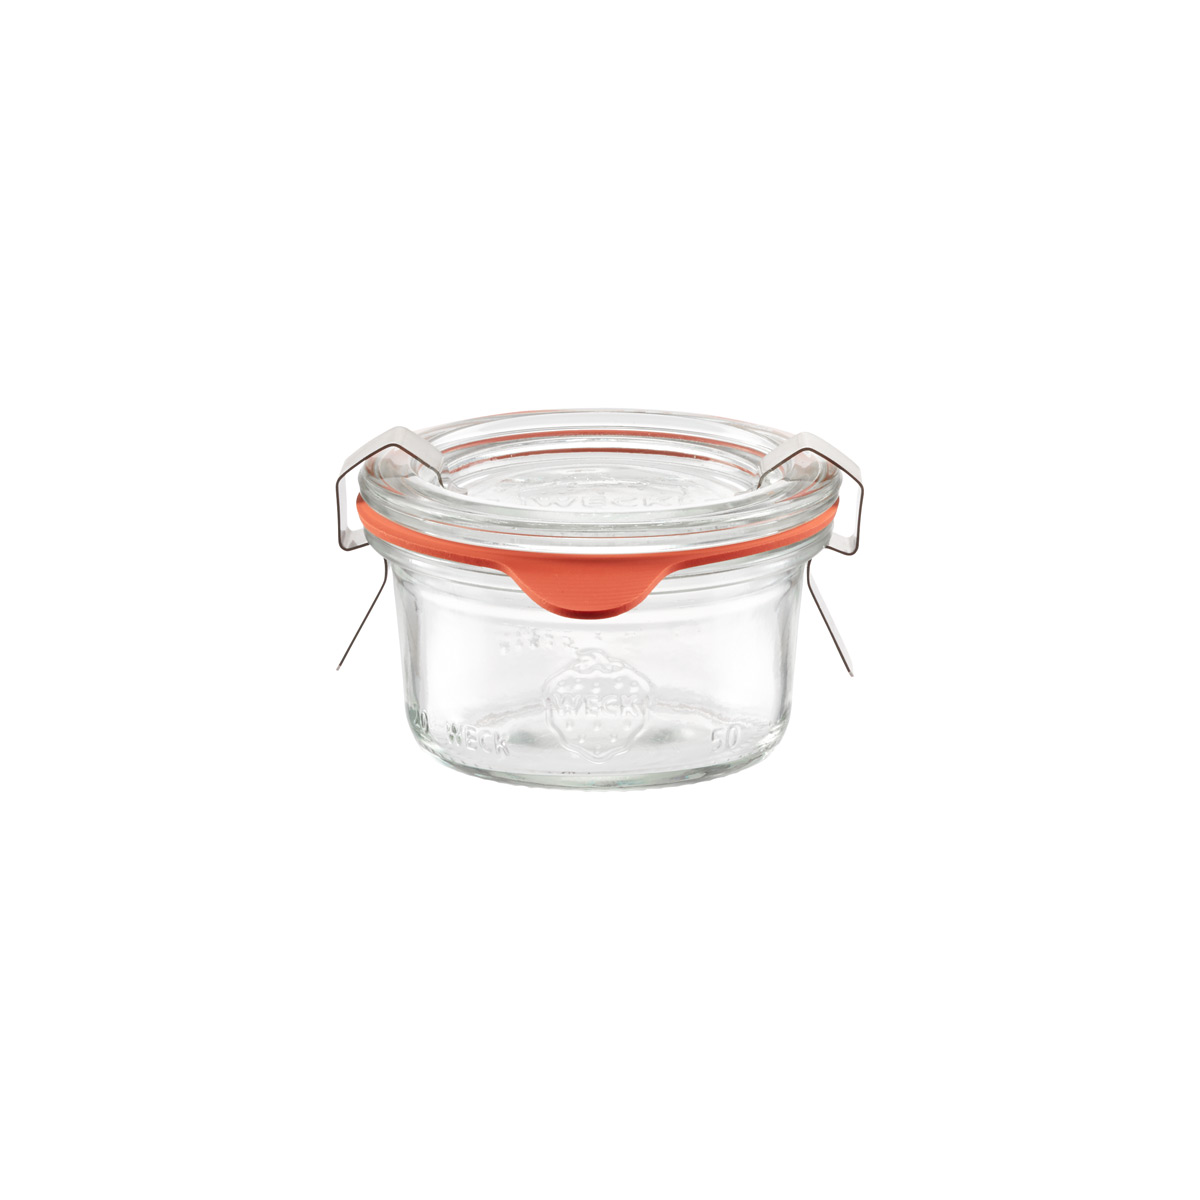 1.7 oz. Weck Mini-Sturz Jar